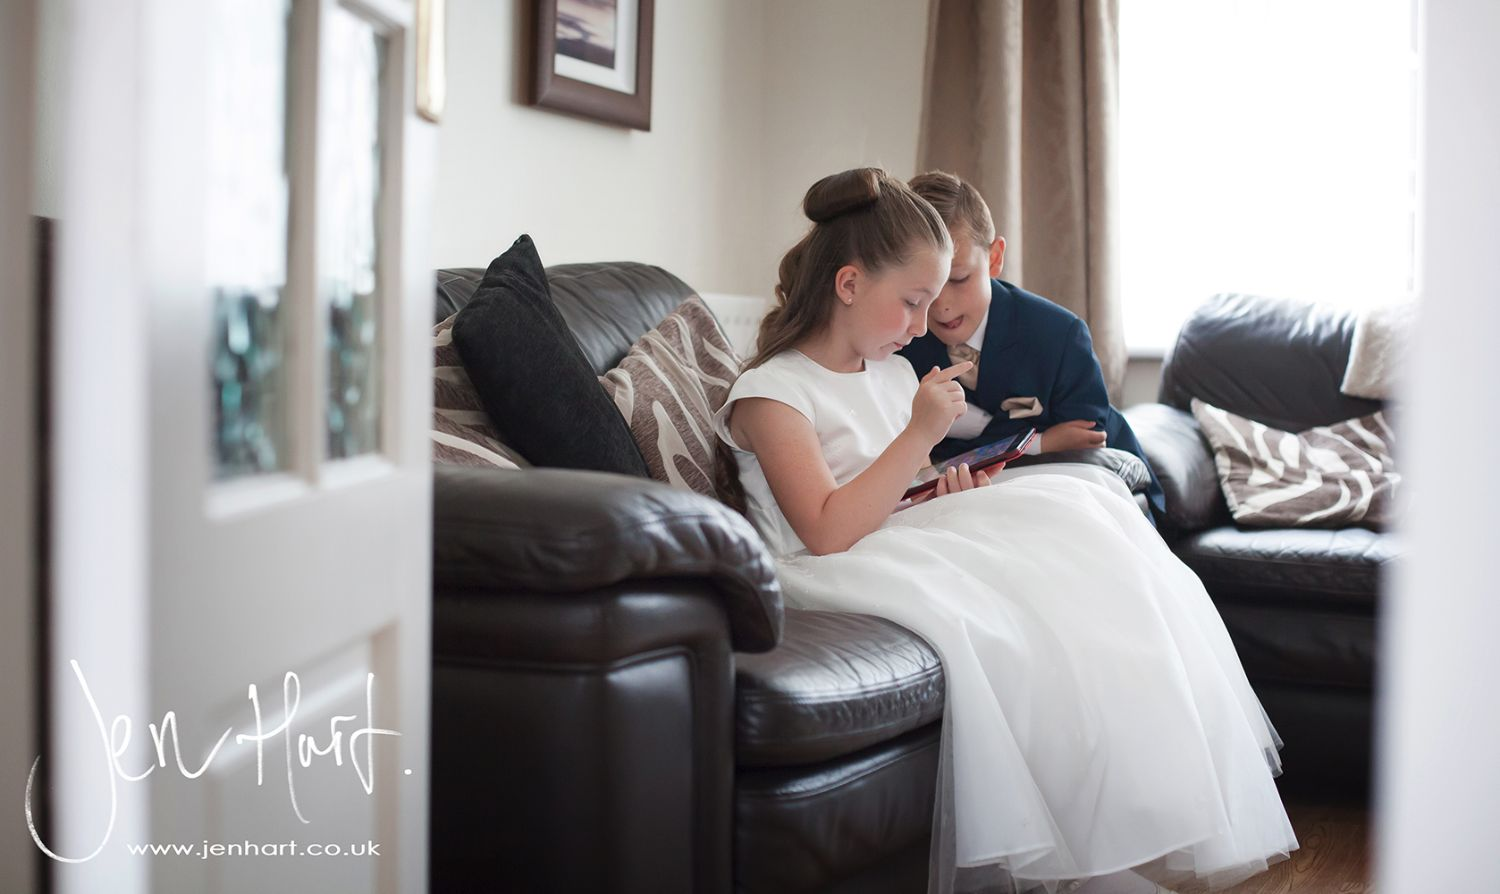 Photograph_Grinkle_Park_Wedding_Andrea&Rob_28JUN14_014_04